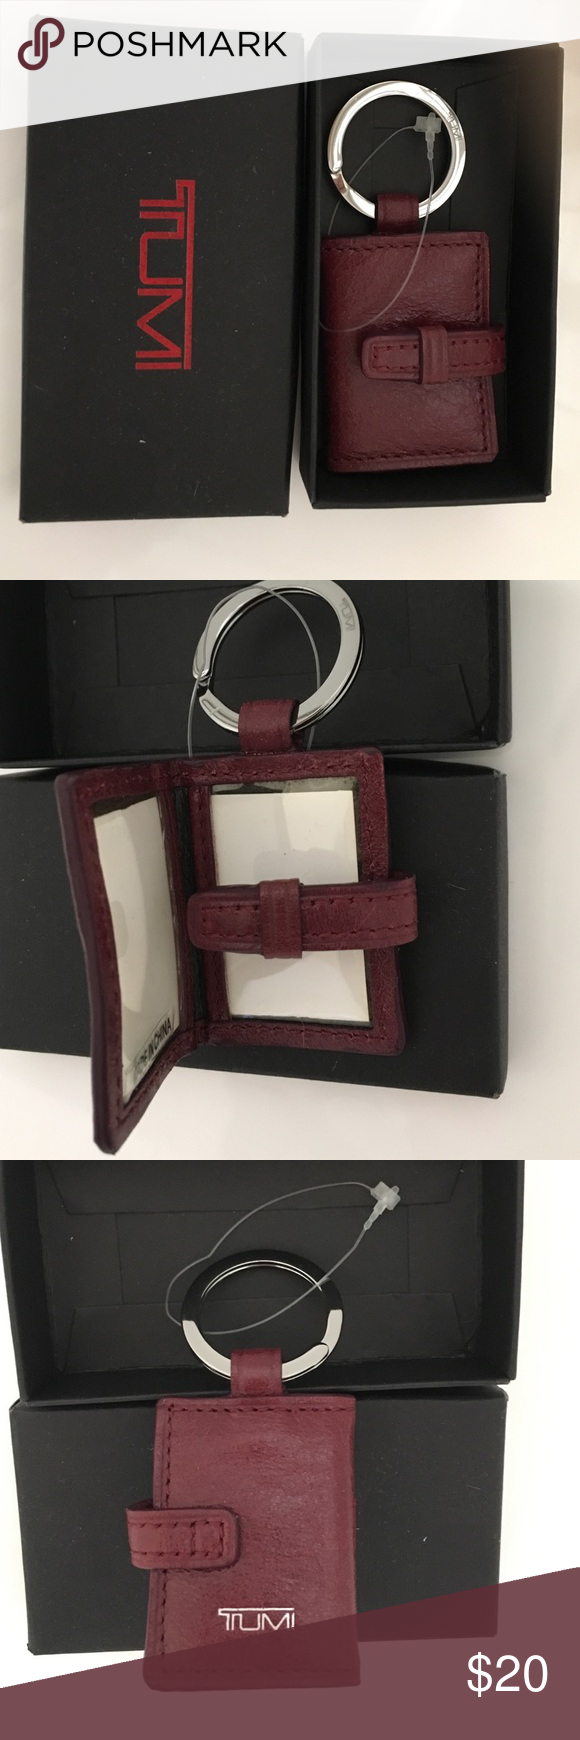 NWT TUMI locket photo key ring TUMI leather key ring. Journal style with snap closure, has 2 photo slots inside. Comes in gift box it was purchased in, pictured. Accessories Key & Card Holders